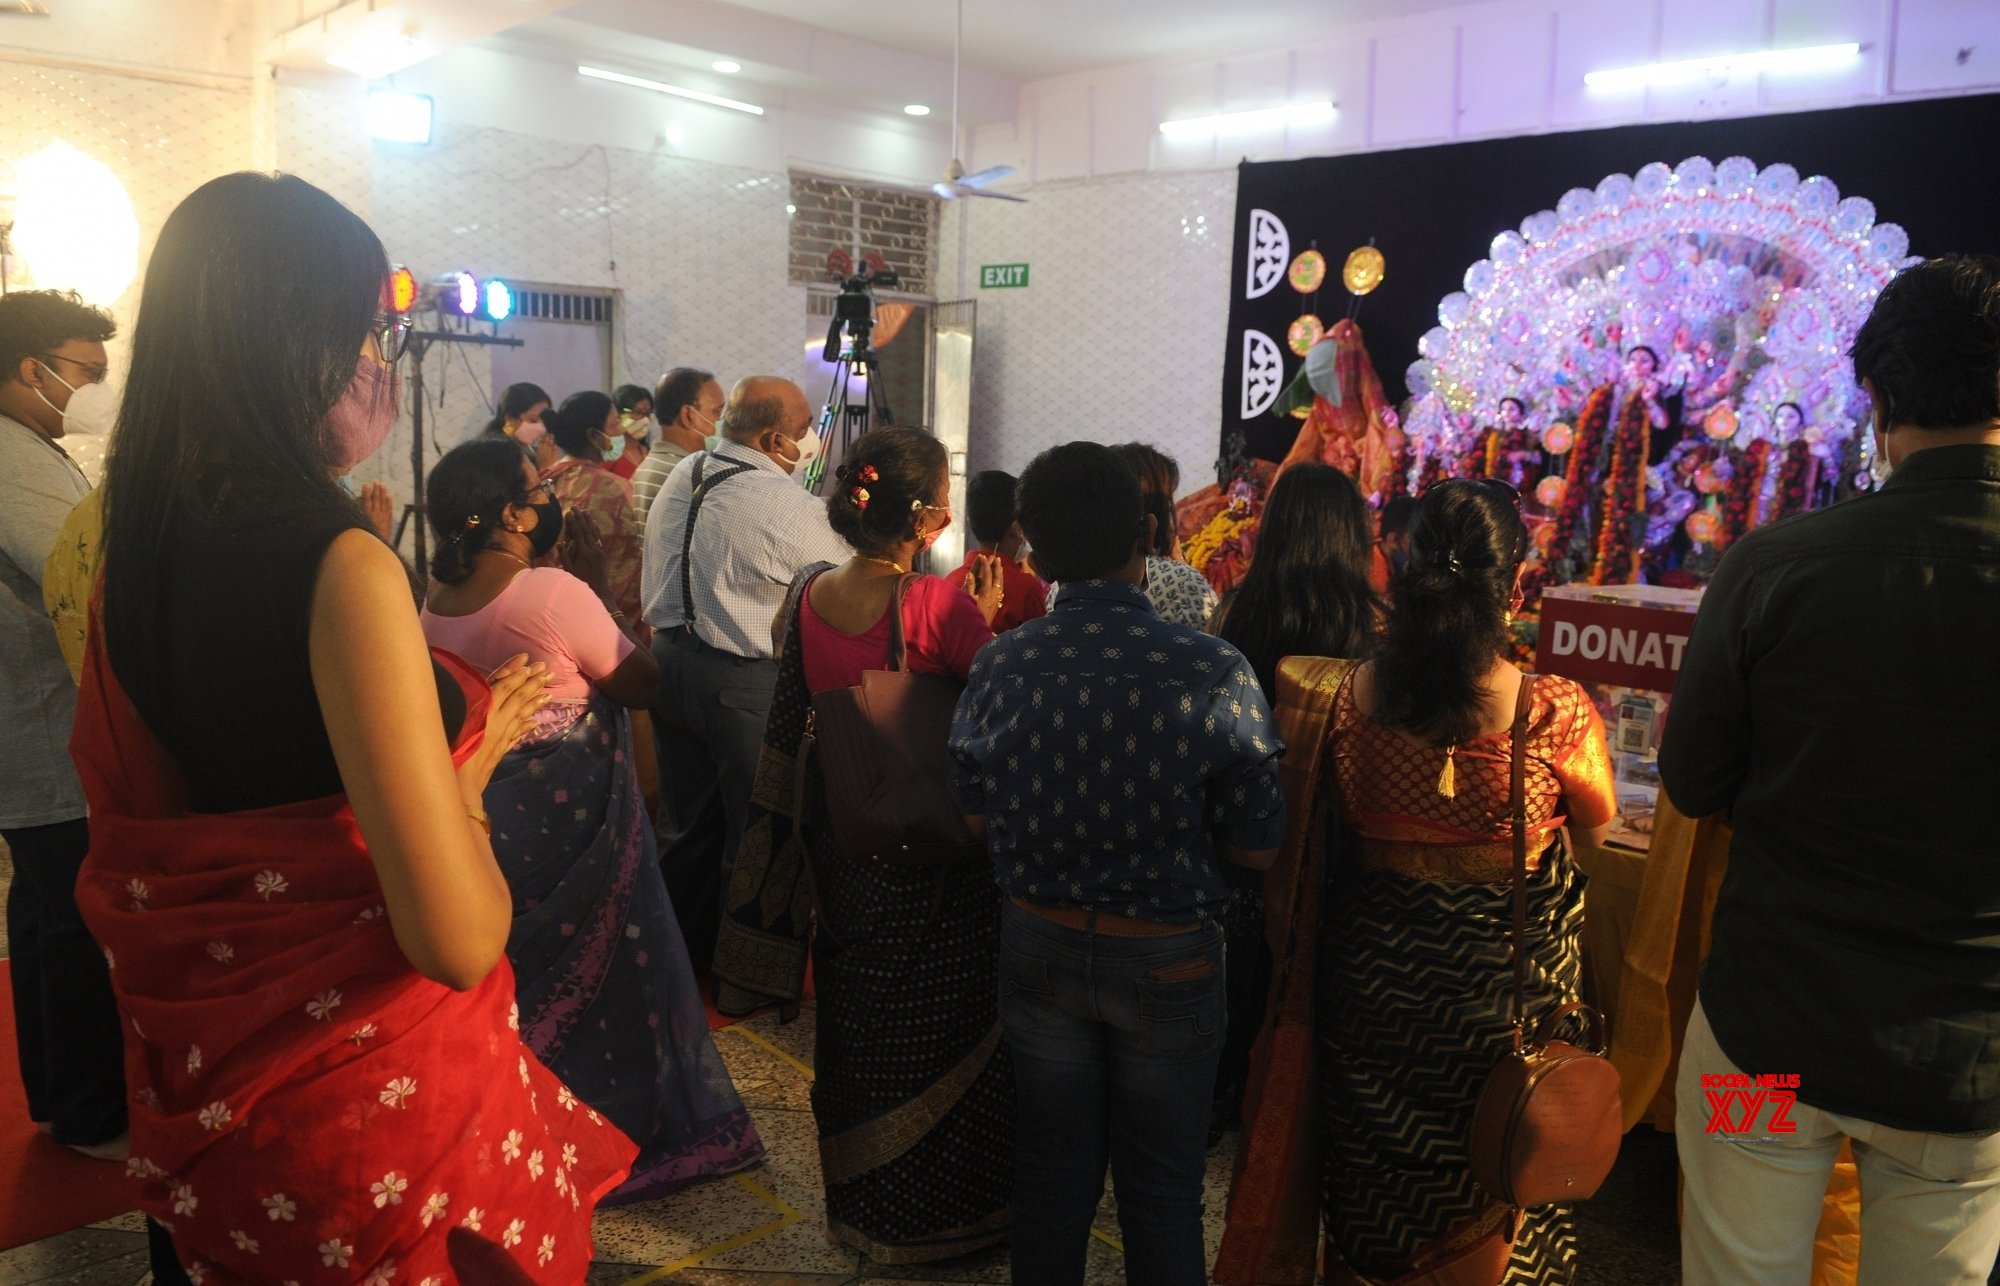 New Delhi: Devotees offer prayer to Goddess Durga on the occasion of Maha Asthami at a Community puja at Motia Khan #Gallery